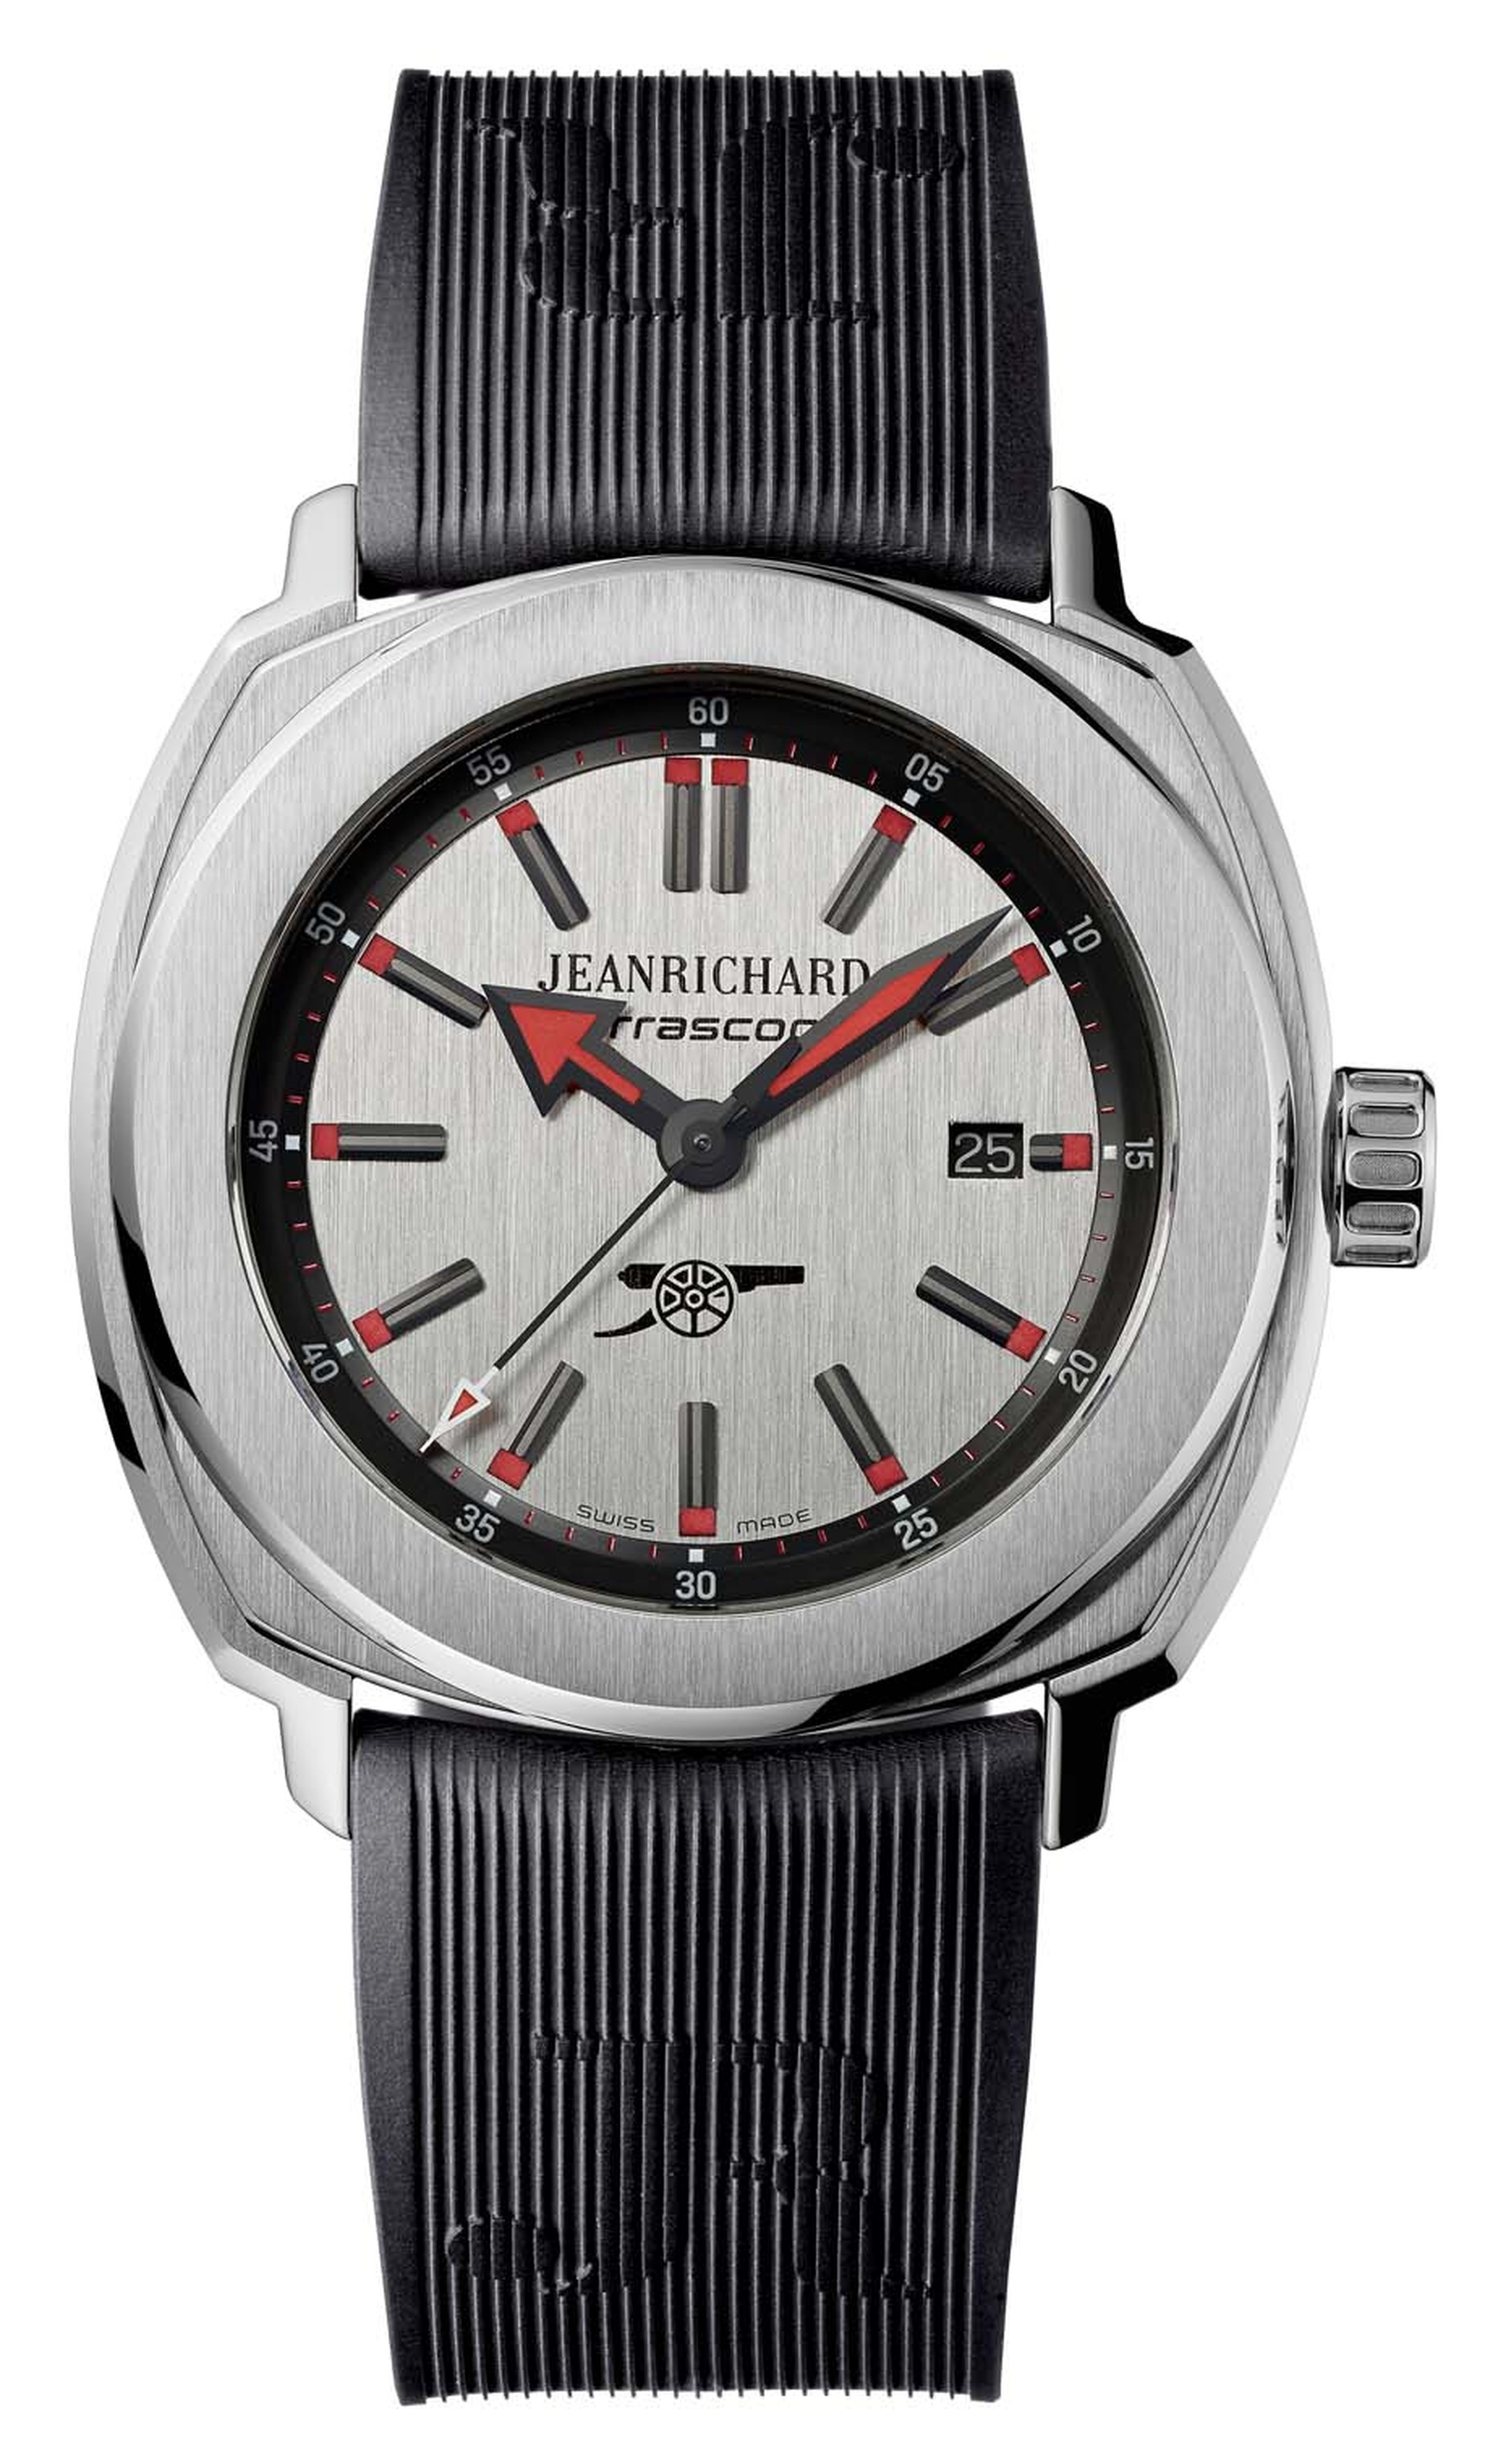 JeanRichard Arsenal Terrascope stainless steel model made in partnership between the watchmaker and the prestigious English football team (£2,300).